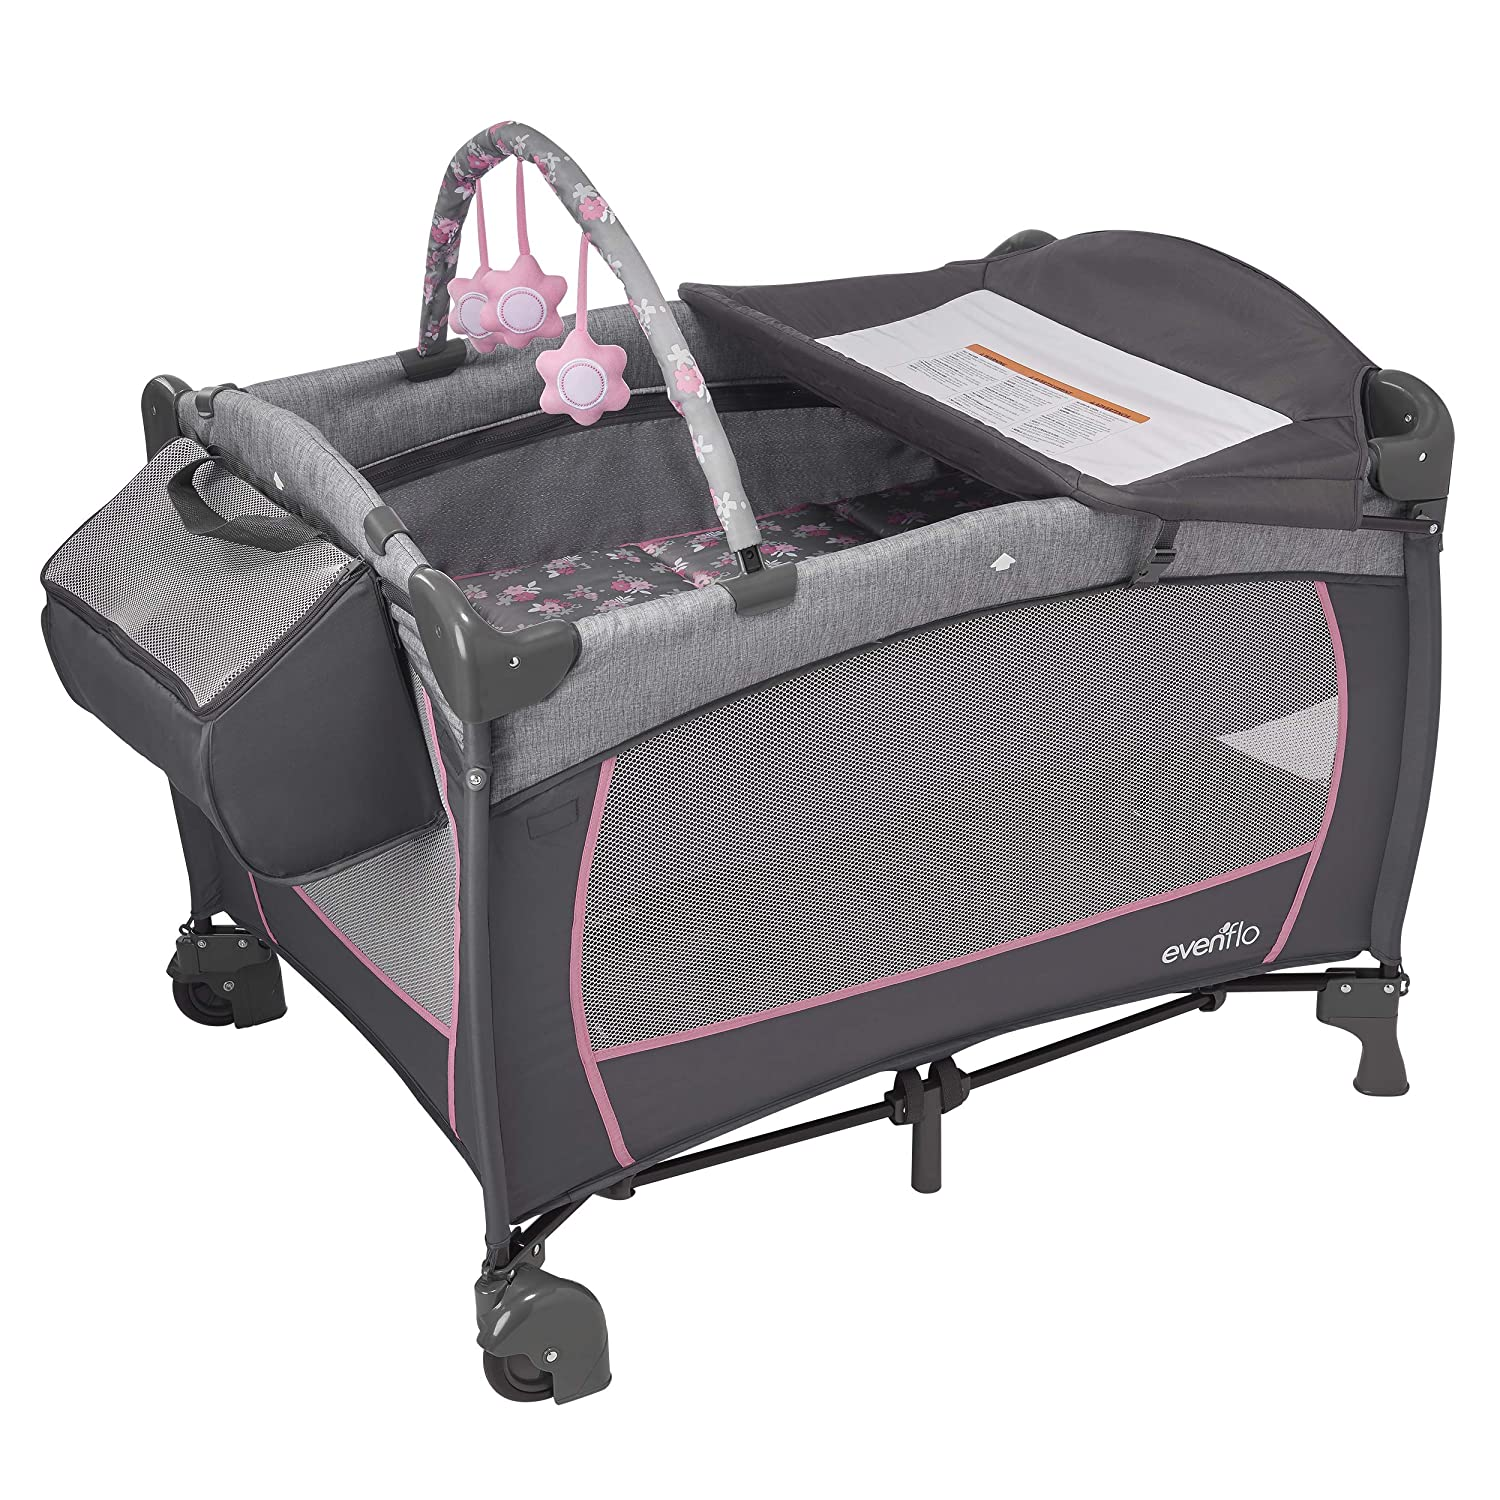 Evenflo Portable BabySuite DLX Playard, Poppy